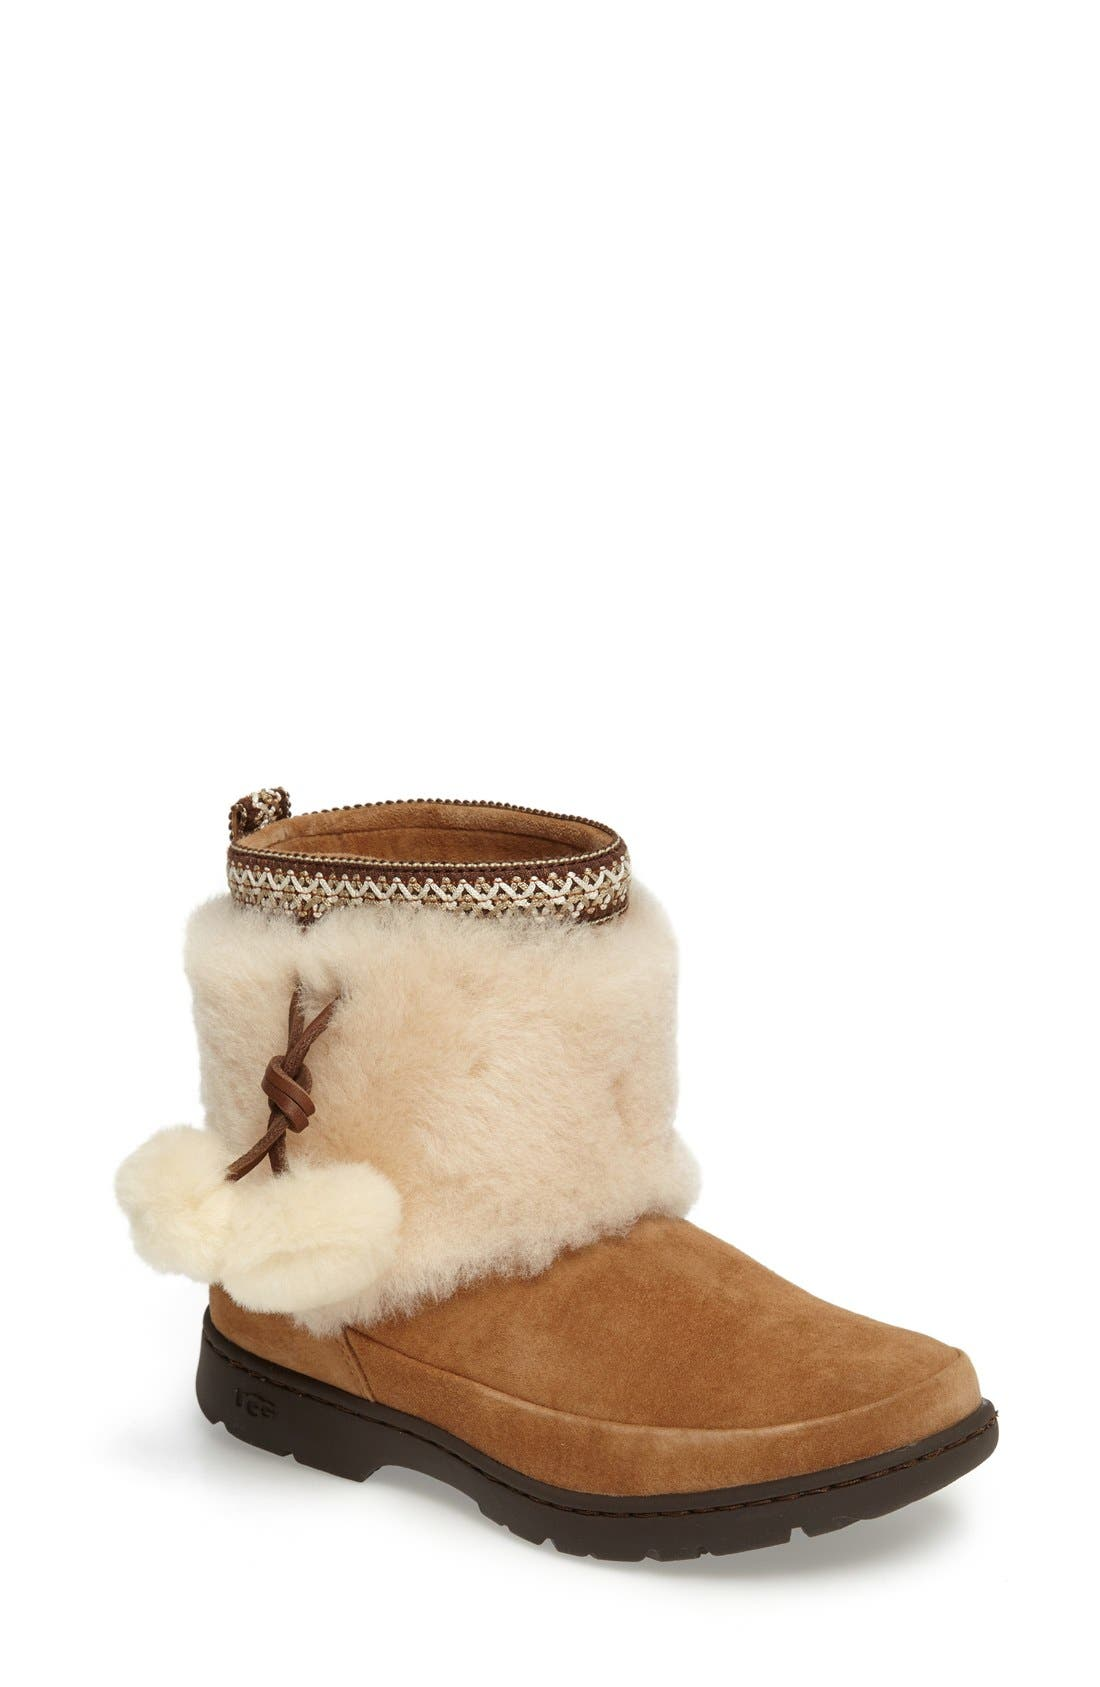 Main Image - UGG® Brie Genuine Shearling Waterproof Bootie (Women)